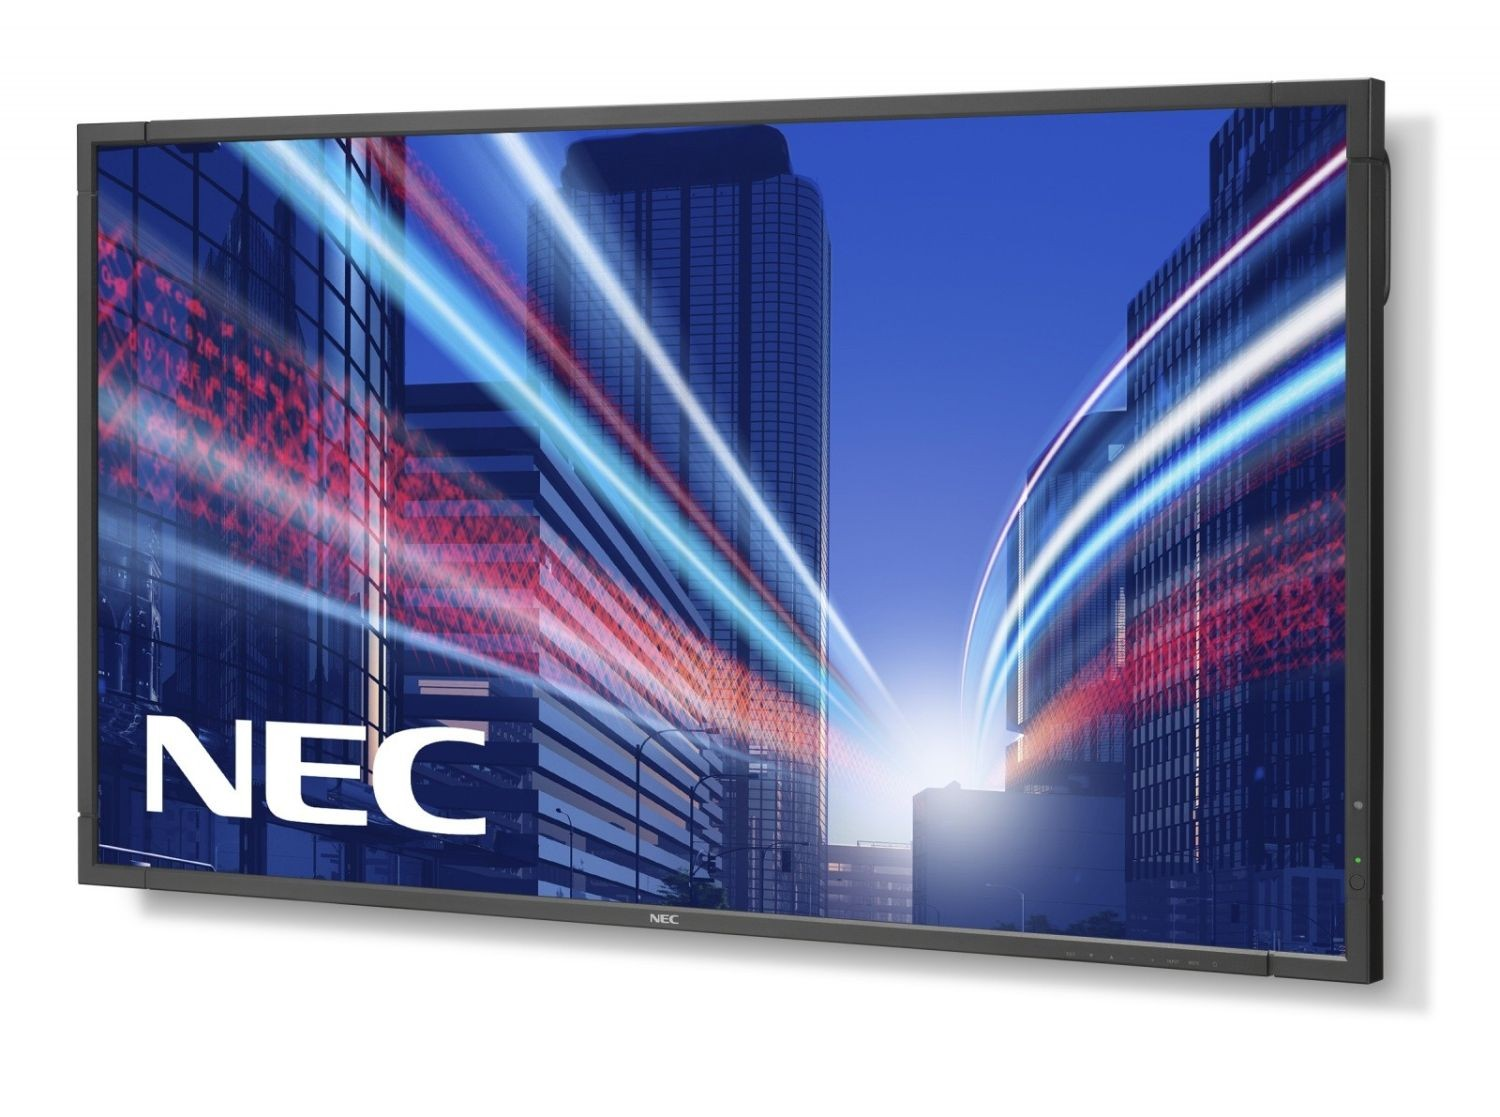 NEC 80' LED E805 FHD, 350cd, 12/7